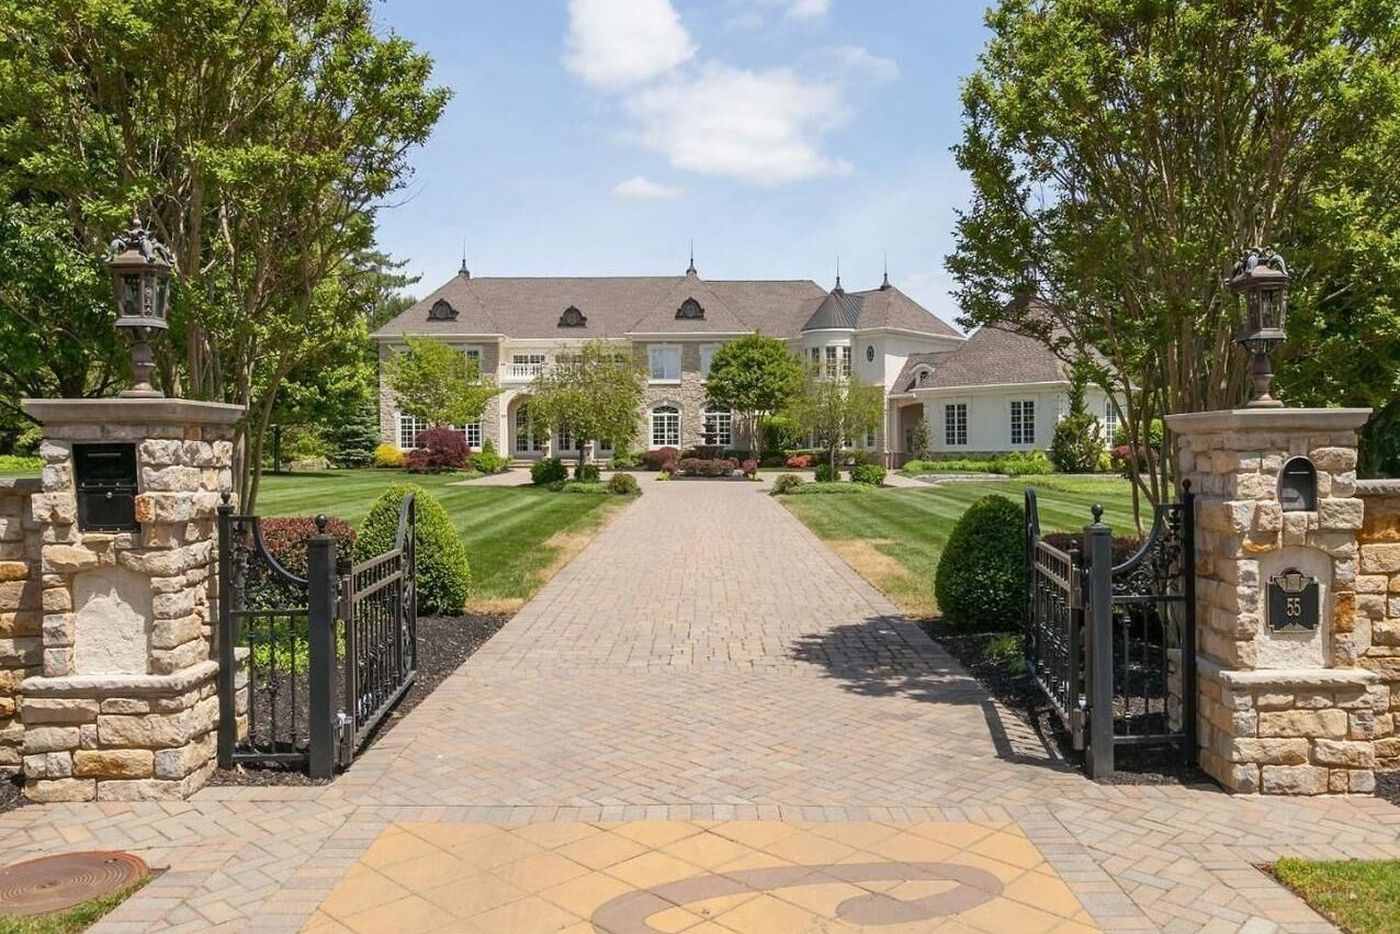 Three of the most expensive properties on the market in Camden County